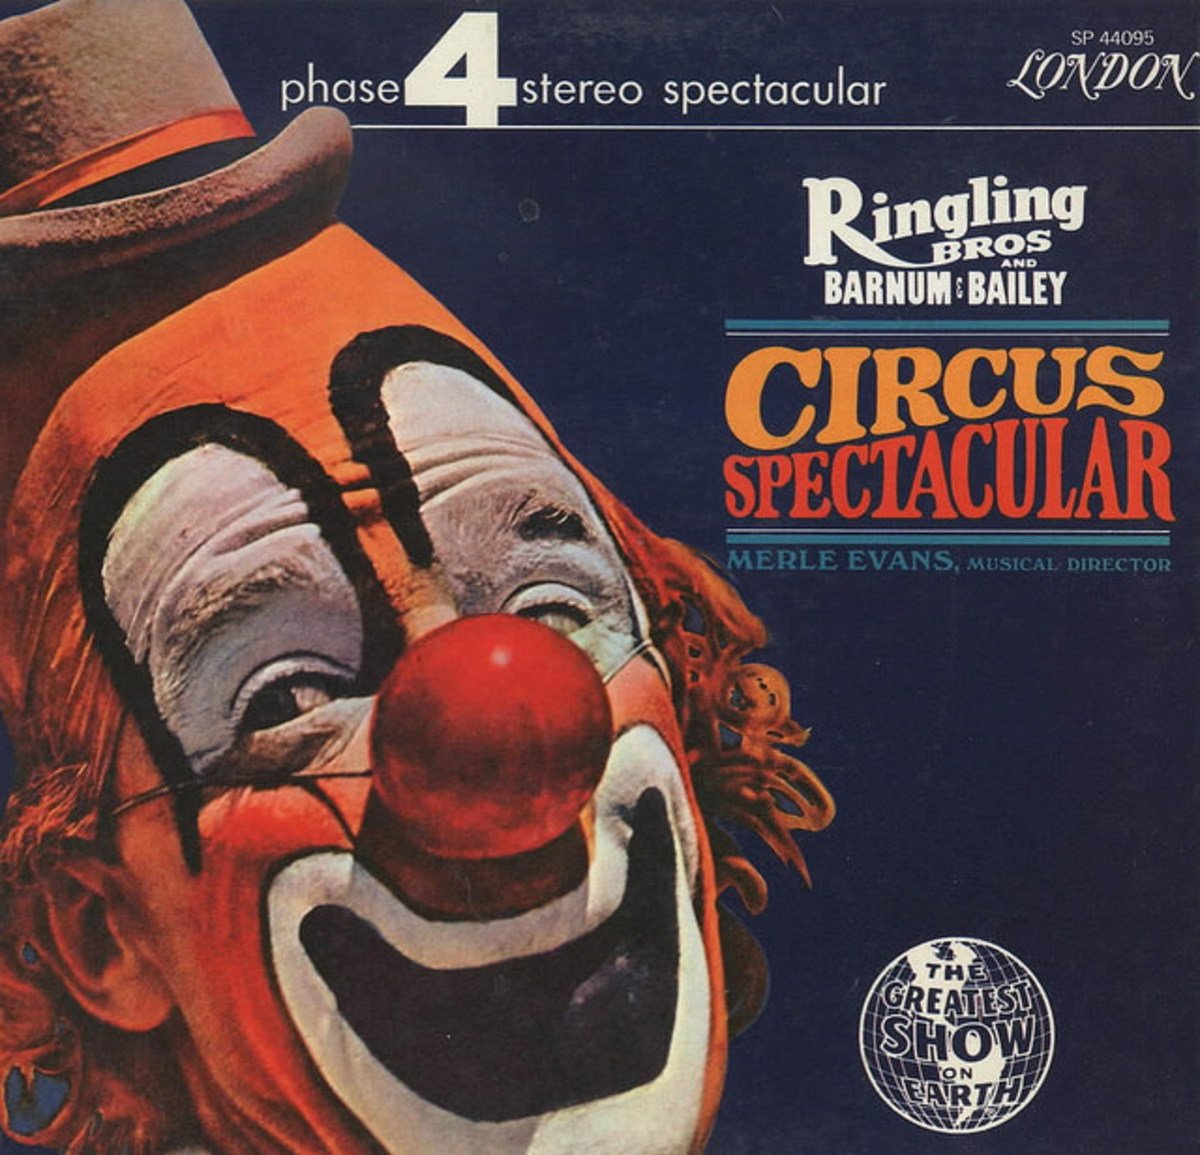 "Ringling Bros. Barnum and Bailey ""Circus Spectacular"" London 4 Phase Records SP 44095 12"" Vinyl Record"